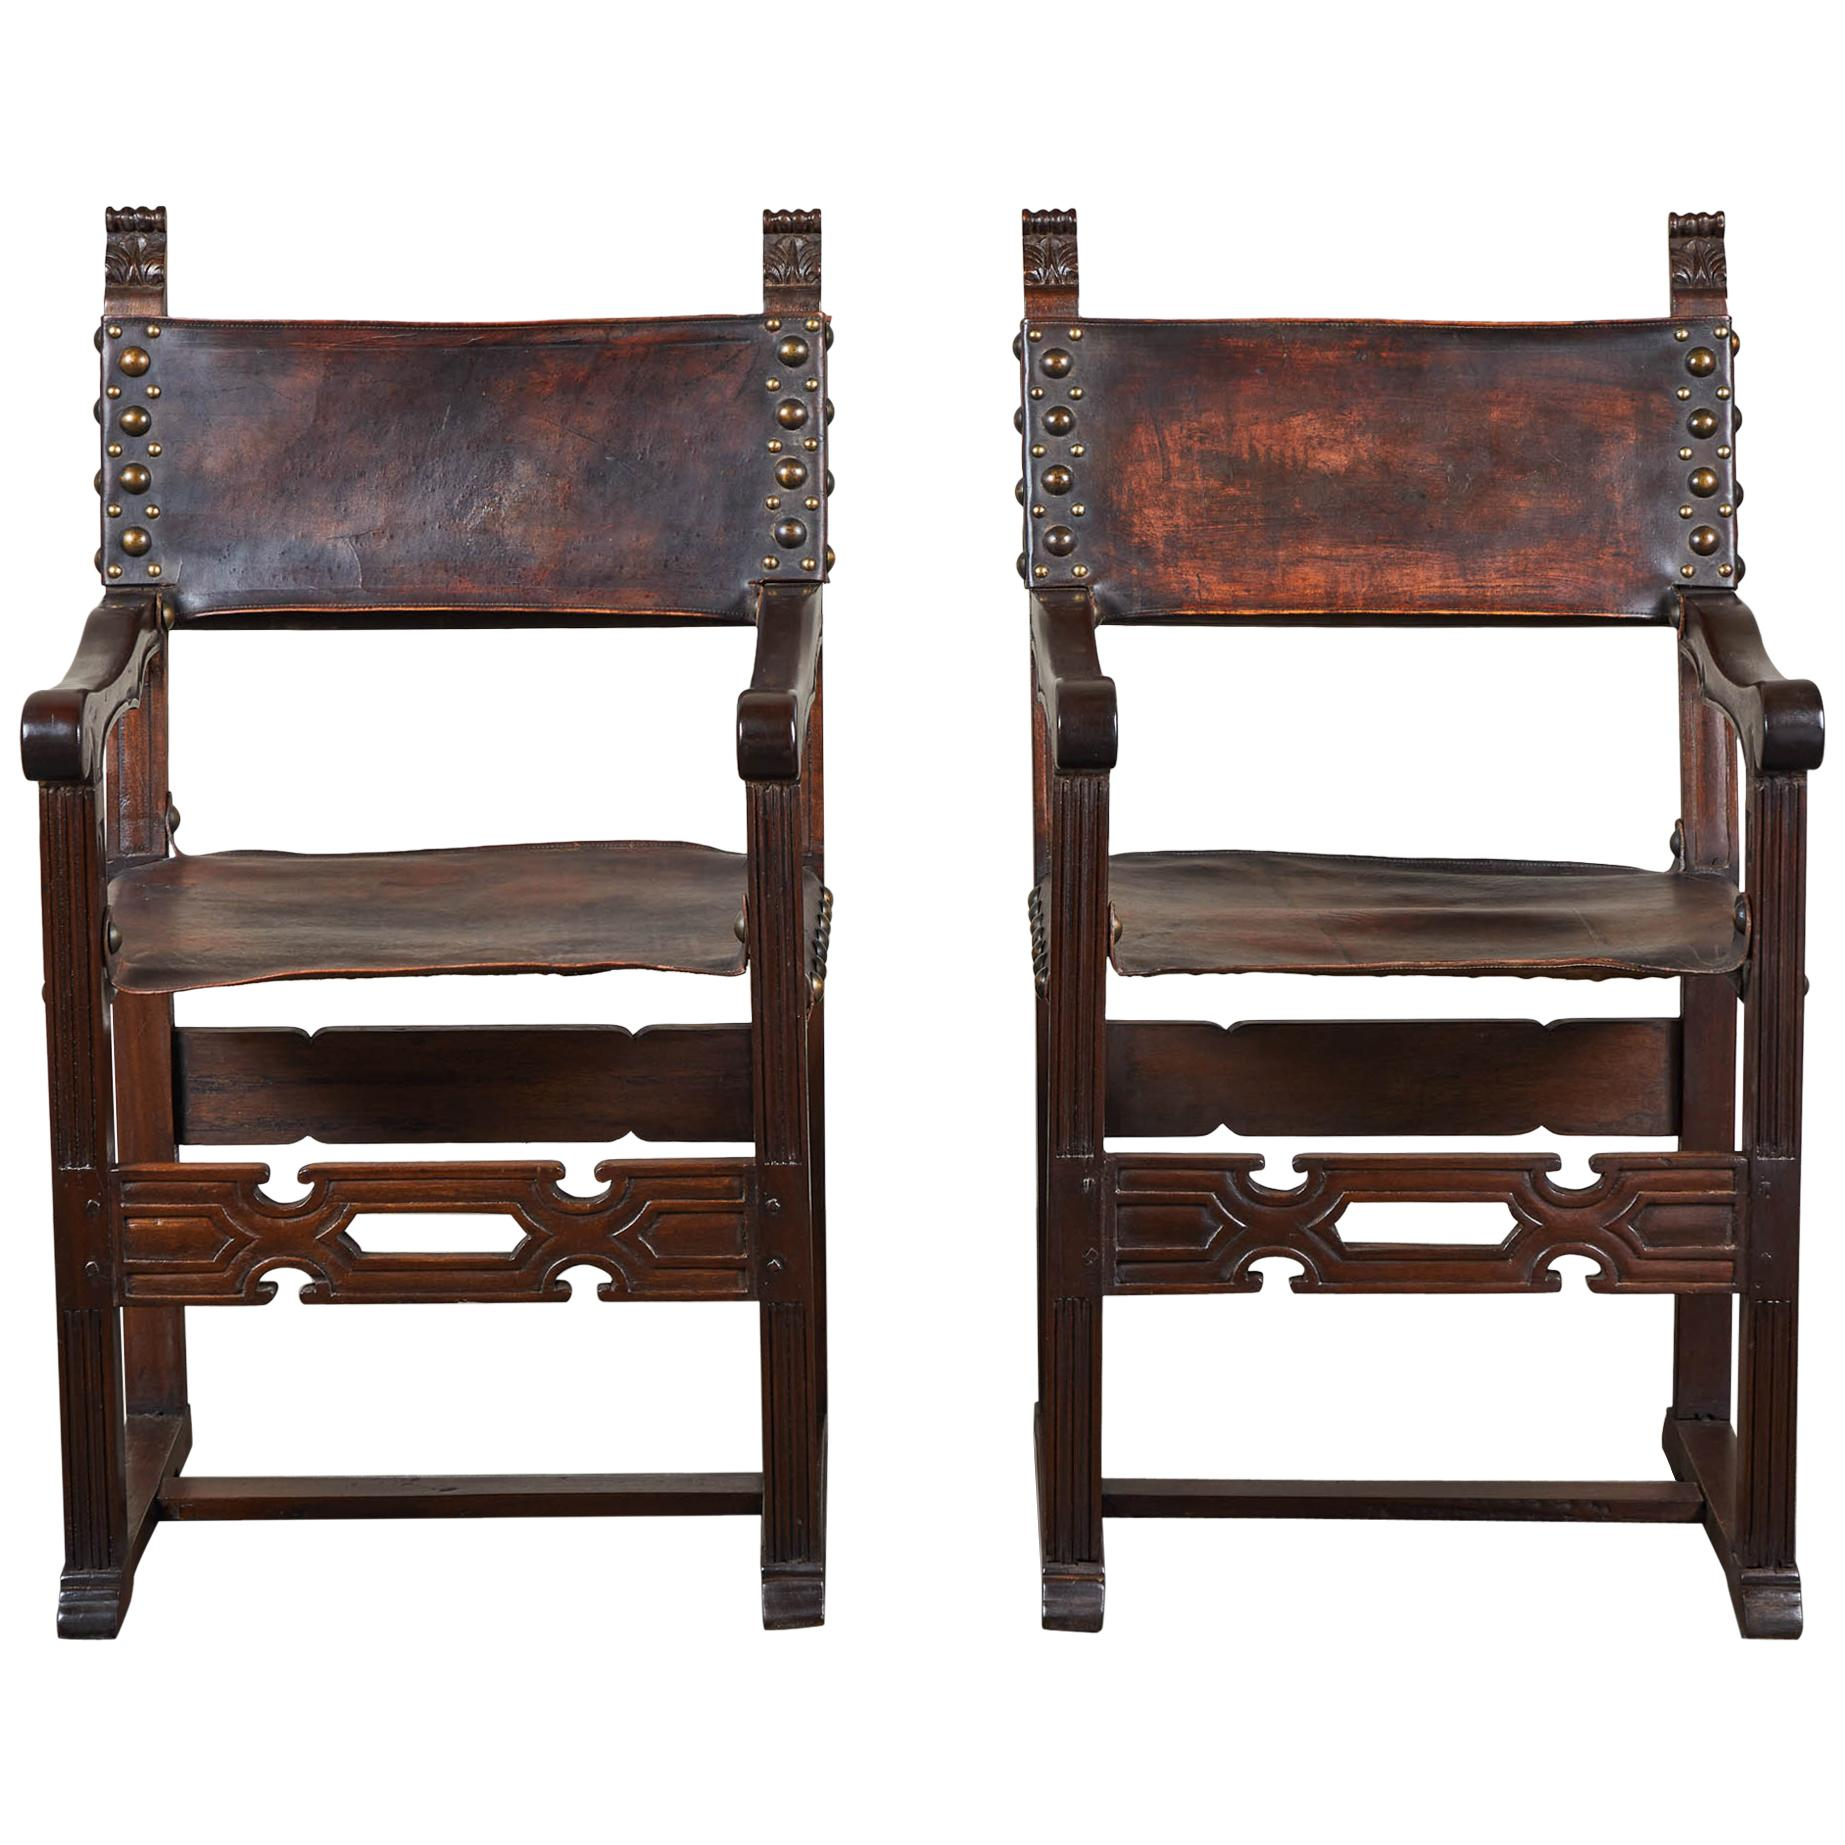 Pair of 20th Century South American Armchairs with Leather Seat and Back